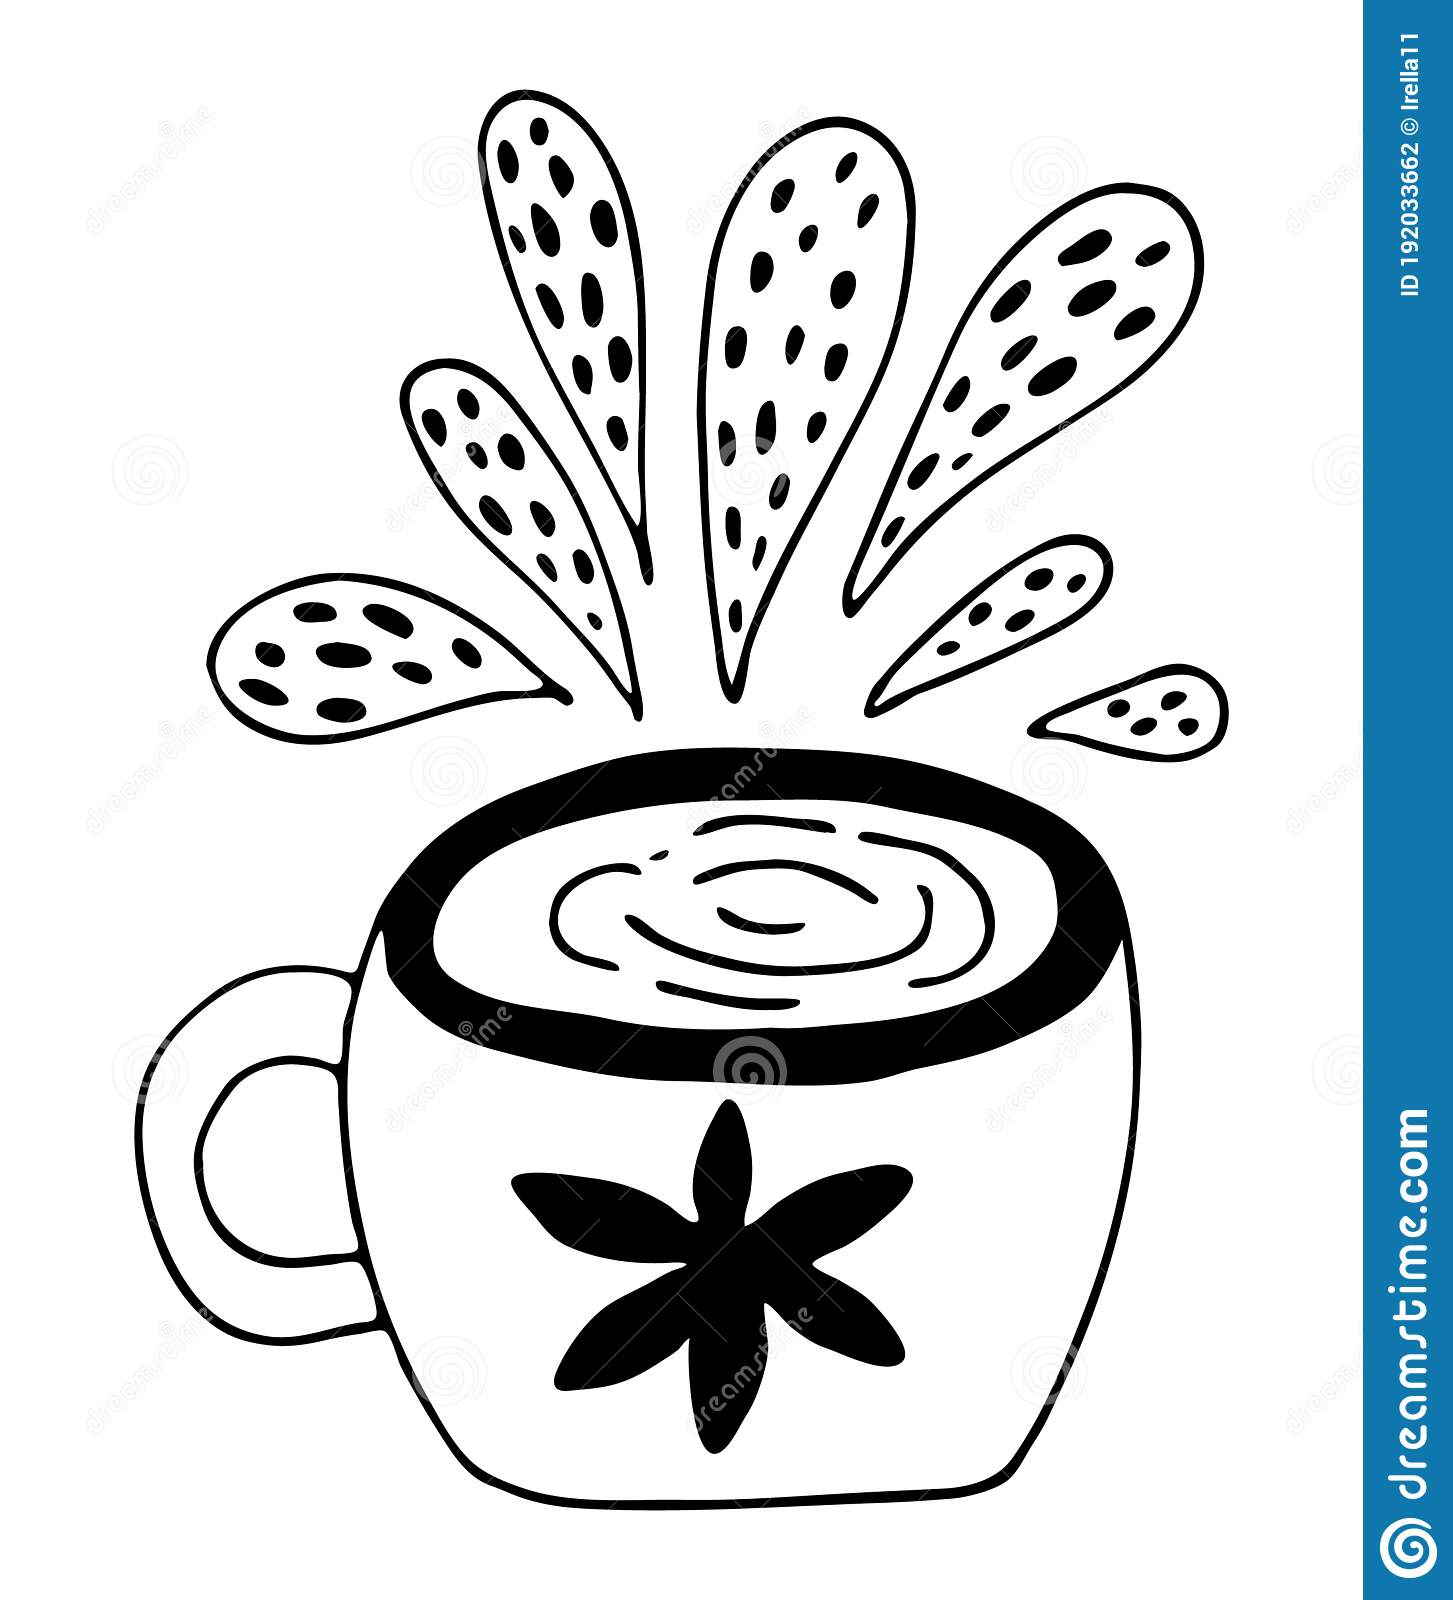 Cup Of Coffee Black Outline Vector Illustration Cute Mug With Flower Doodle Sketch For Coffee Day Cards Beverage Design And Stock Illustration Illustration Of International Menu 192033662